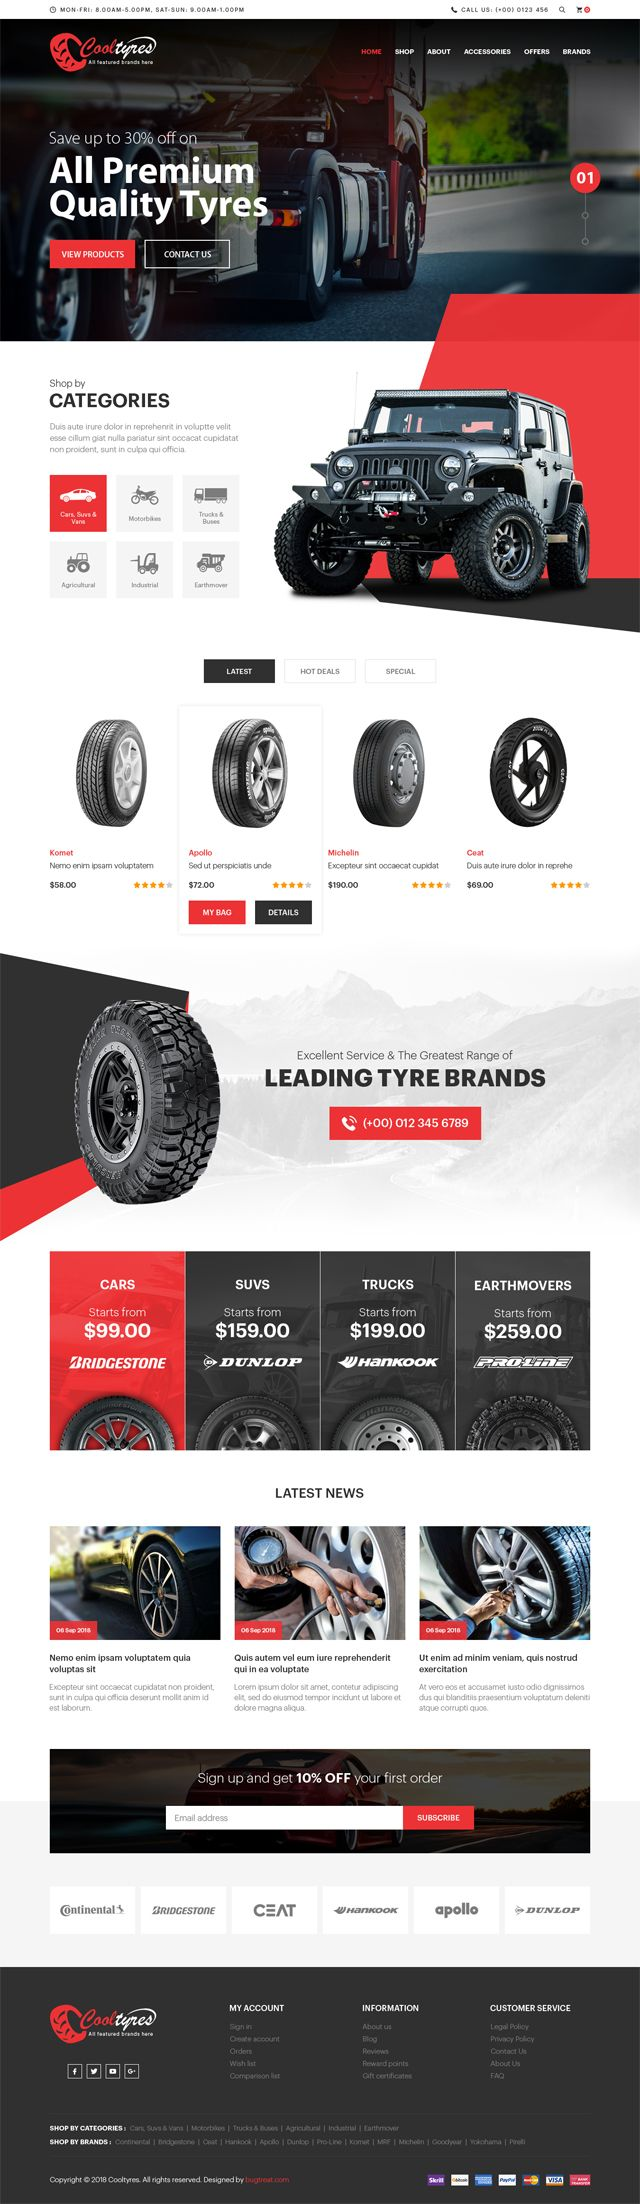 Cool Tyres: Best Automotive Wheels & Tires Shop eCommerce Cs-cart Theme for $45 at Bugtreat.com  Cool Tyres is an exclusive automotive (Car & Bike) wh…